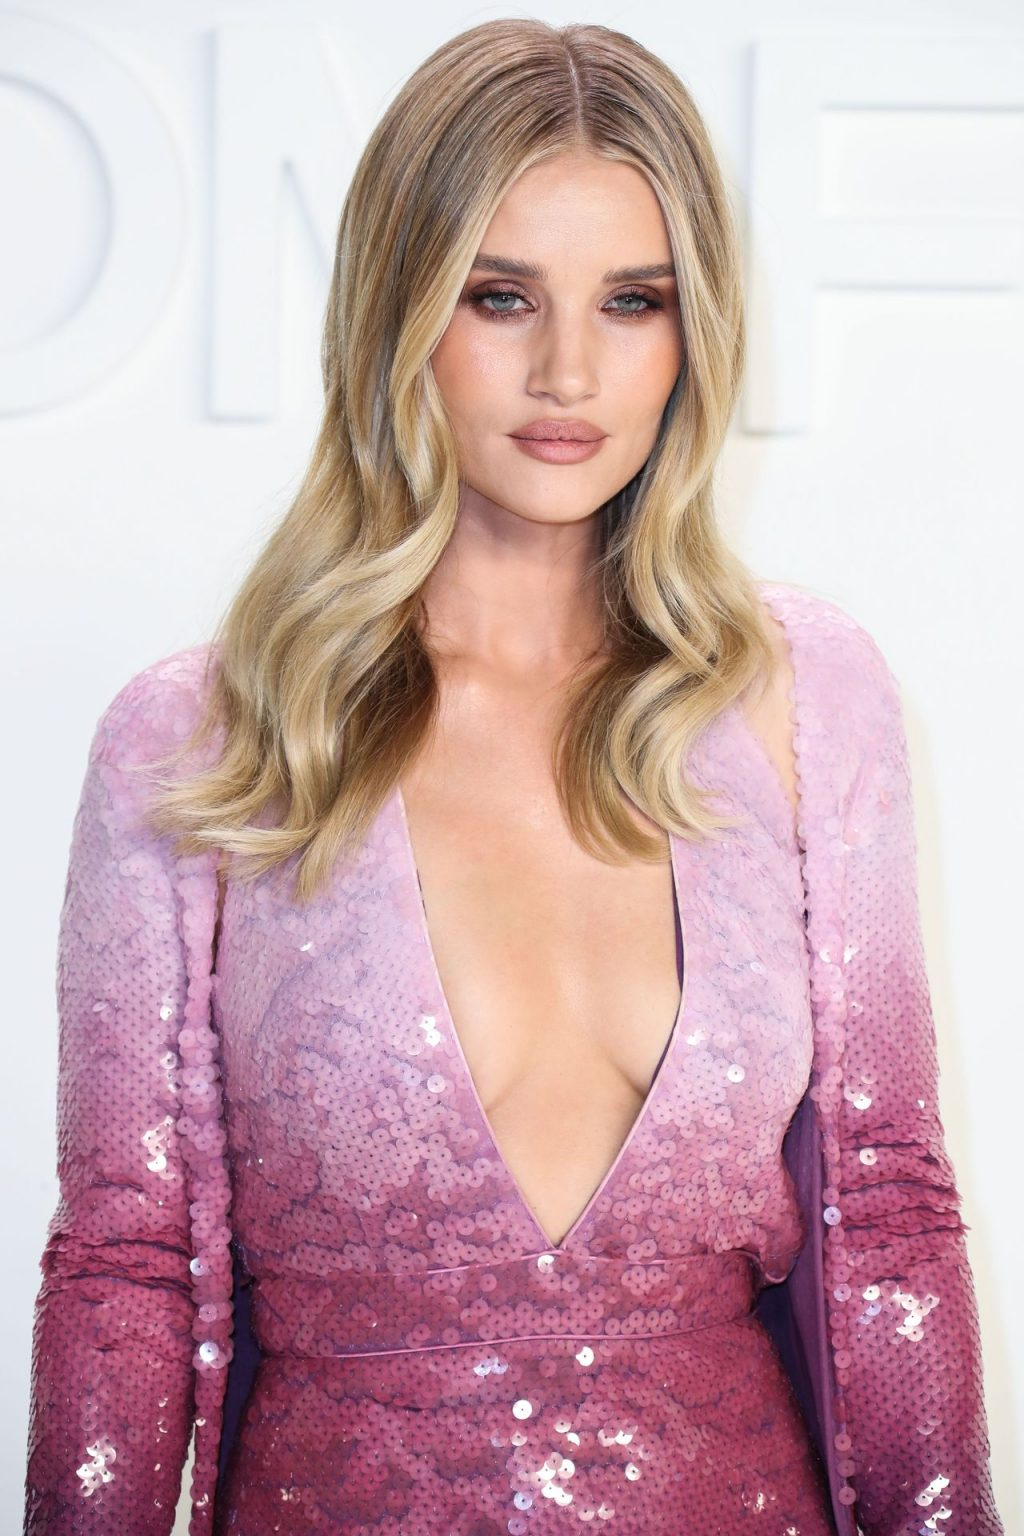 Rosie Huntington Whiteley Sexy The Fappening Blog 70 1024x1536 - Rosie Huntington-Whiteley Shows Her Cleavage at the Tom Ford Fashion Show (115 Photos)